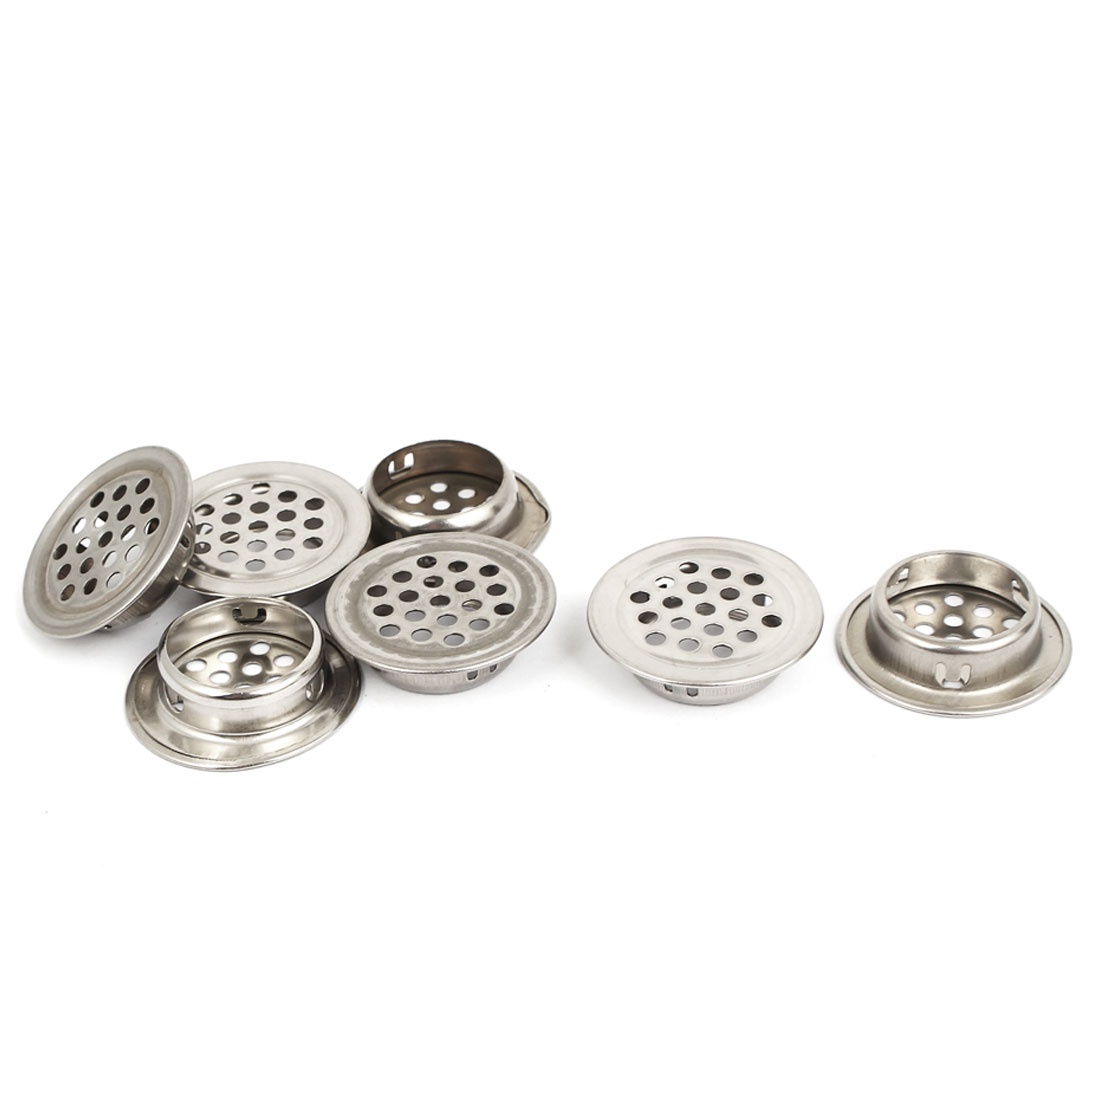 7pcs 34mm Dia Silver Tone Metal Round Mesh Hole Shoes Cabinet Air Vent Louver Cover